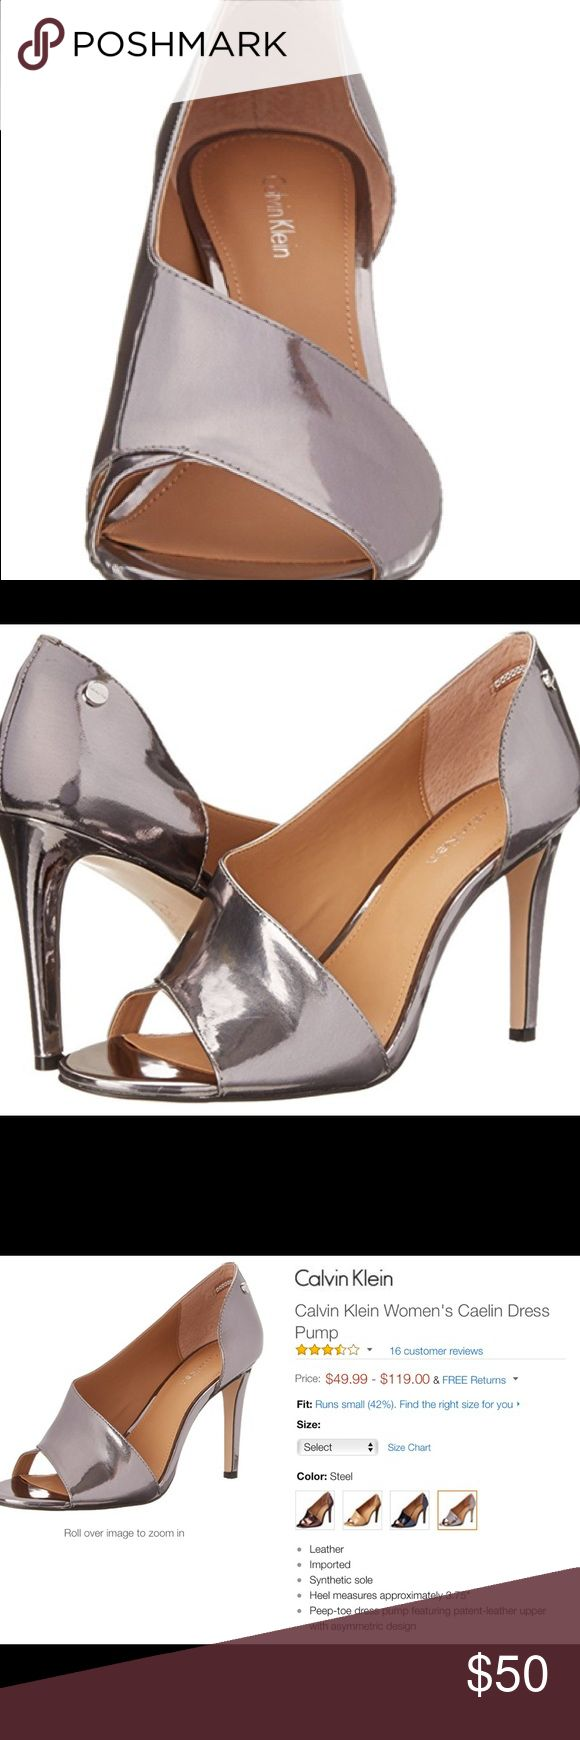 "Calvin Klein Women's Caelin Dress Pump Steel color. Size 9 (runs about 8.5). Heel 3.75"". Gently worn (heel has some scratches - image attached). Peep-toe Dress Pump. No trades. All reasonable offers considered. Calvin Klein Shoes Heels"